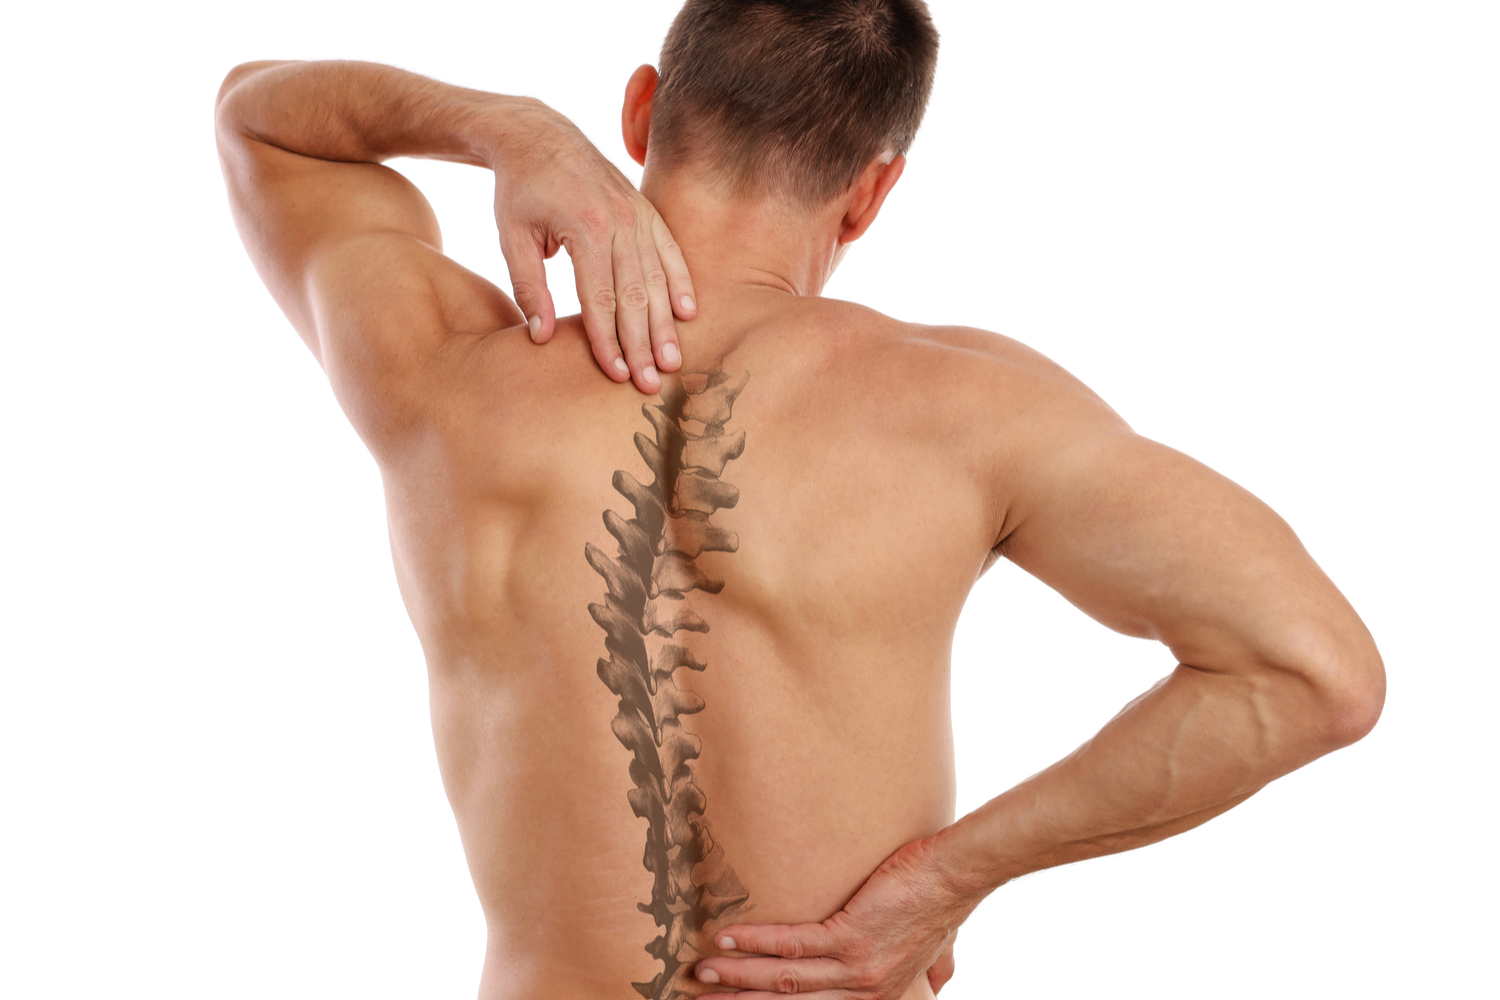 What Are the Benefits of Spinal Decompression Therapy